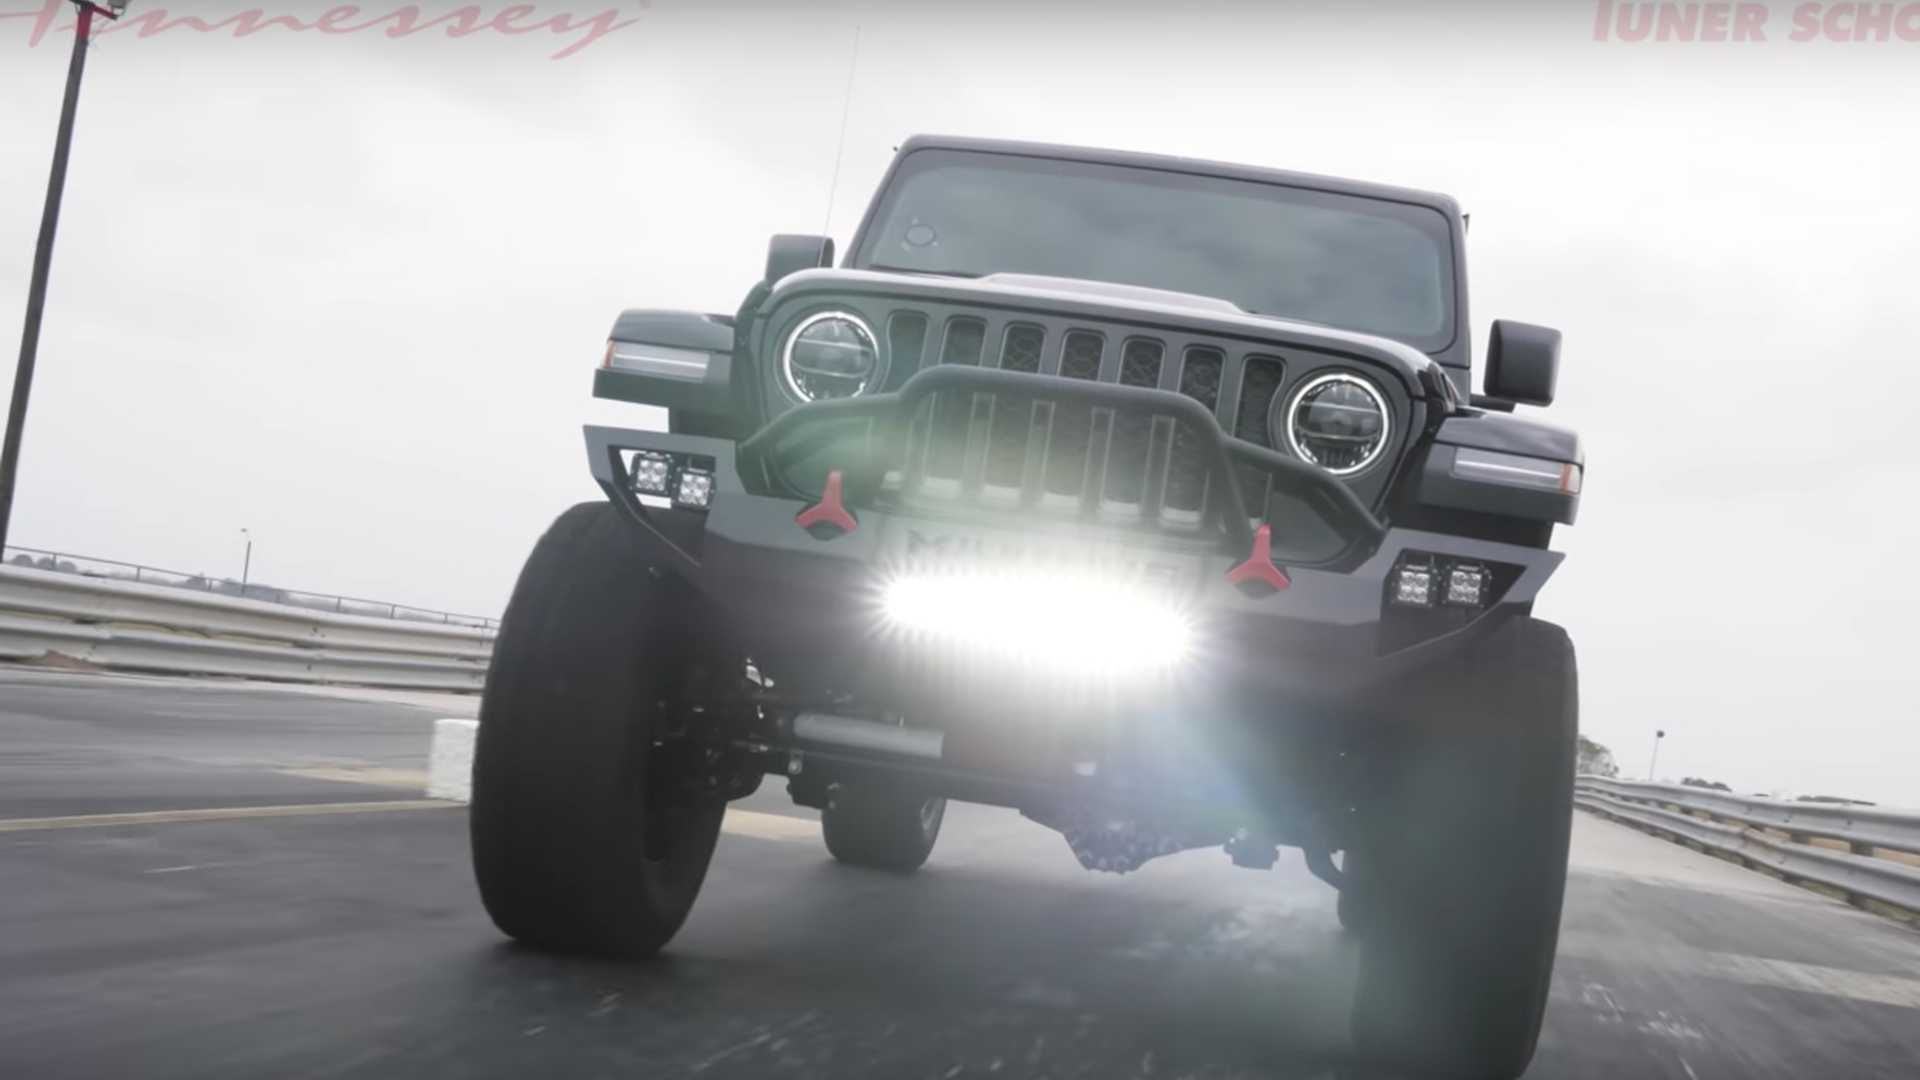 The famous Texan tuner has posted a video on YouTube telling a story about one of its latest projects, a $200,000 Jeep Gladiator truck tuned to 1,000 horsepower (745 kilowatts) at the crank.